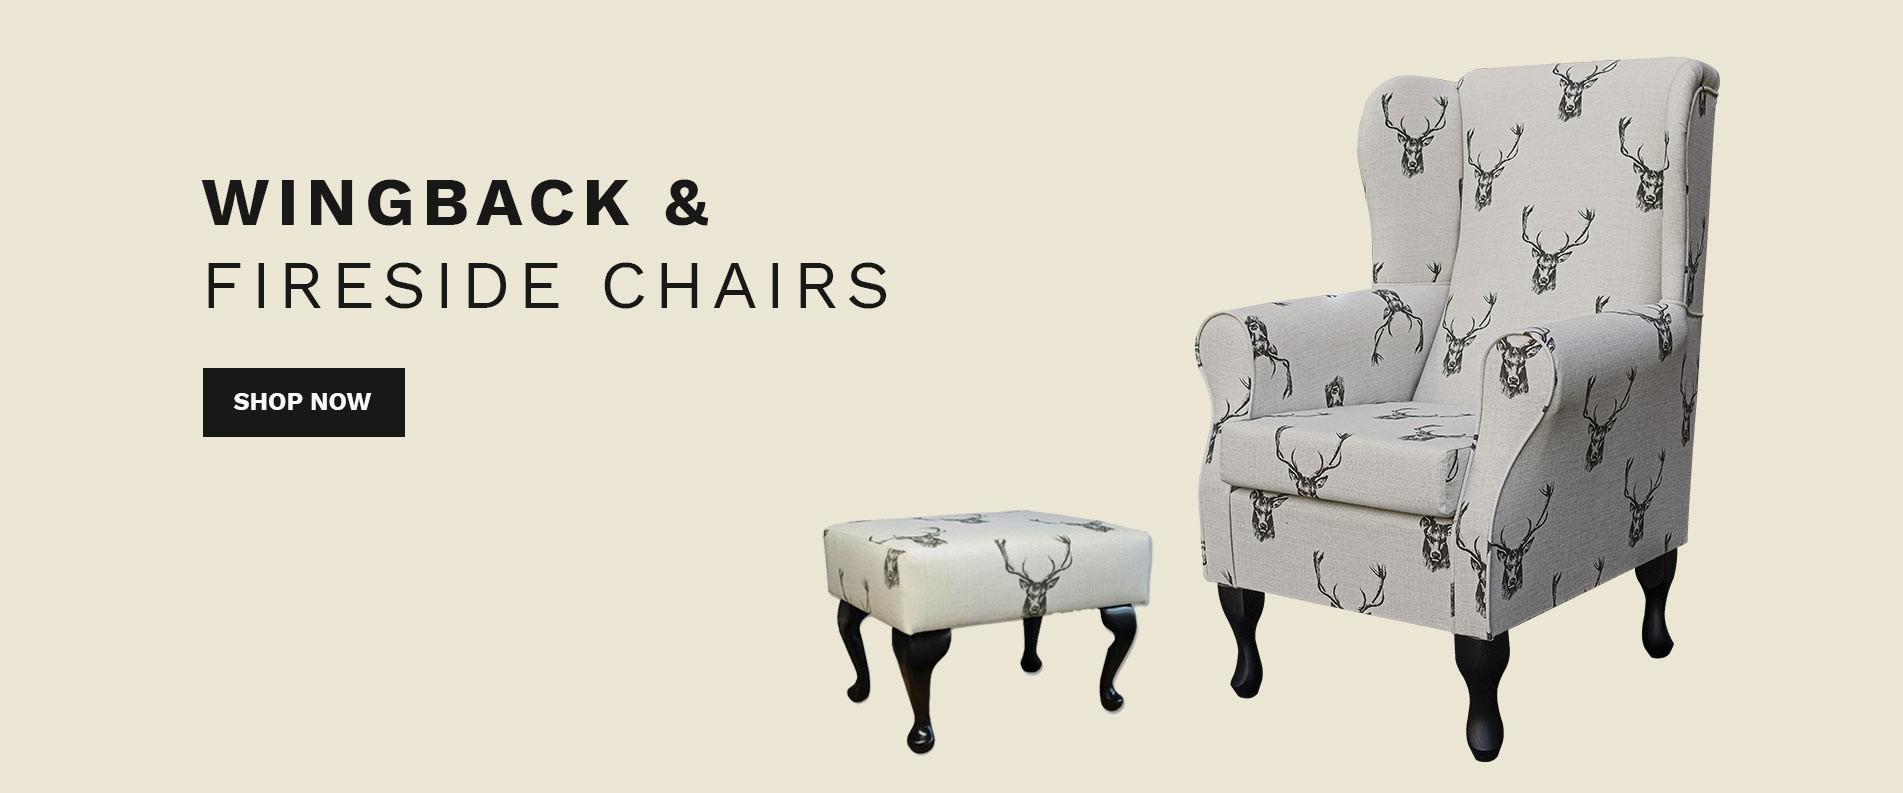 Wingback & Fireside Chairs